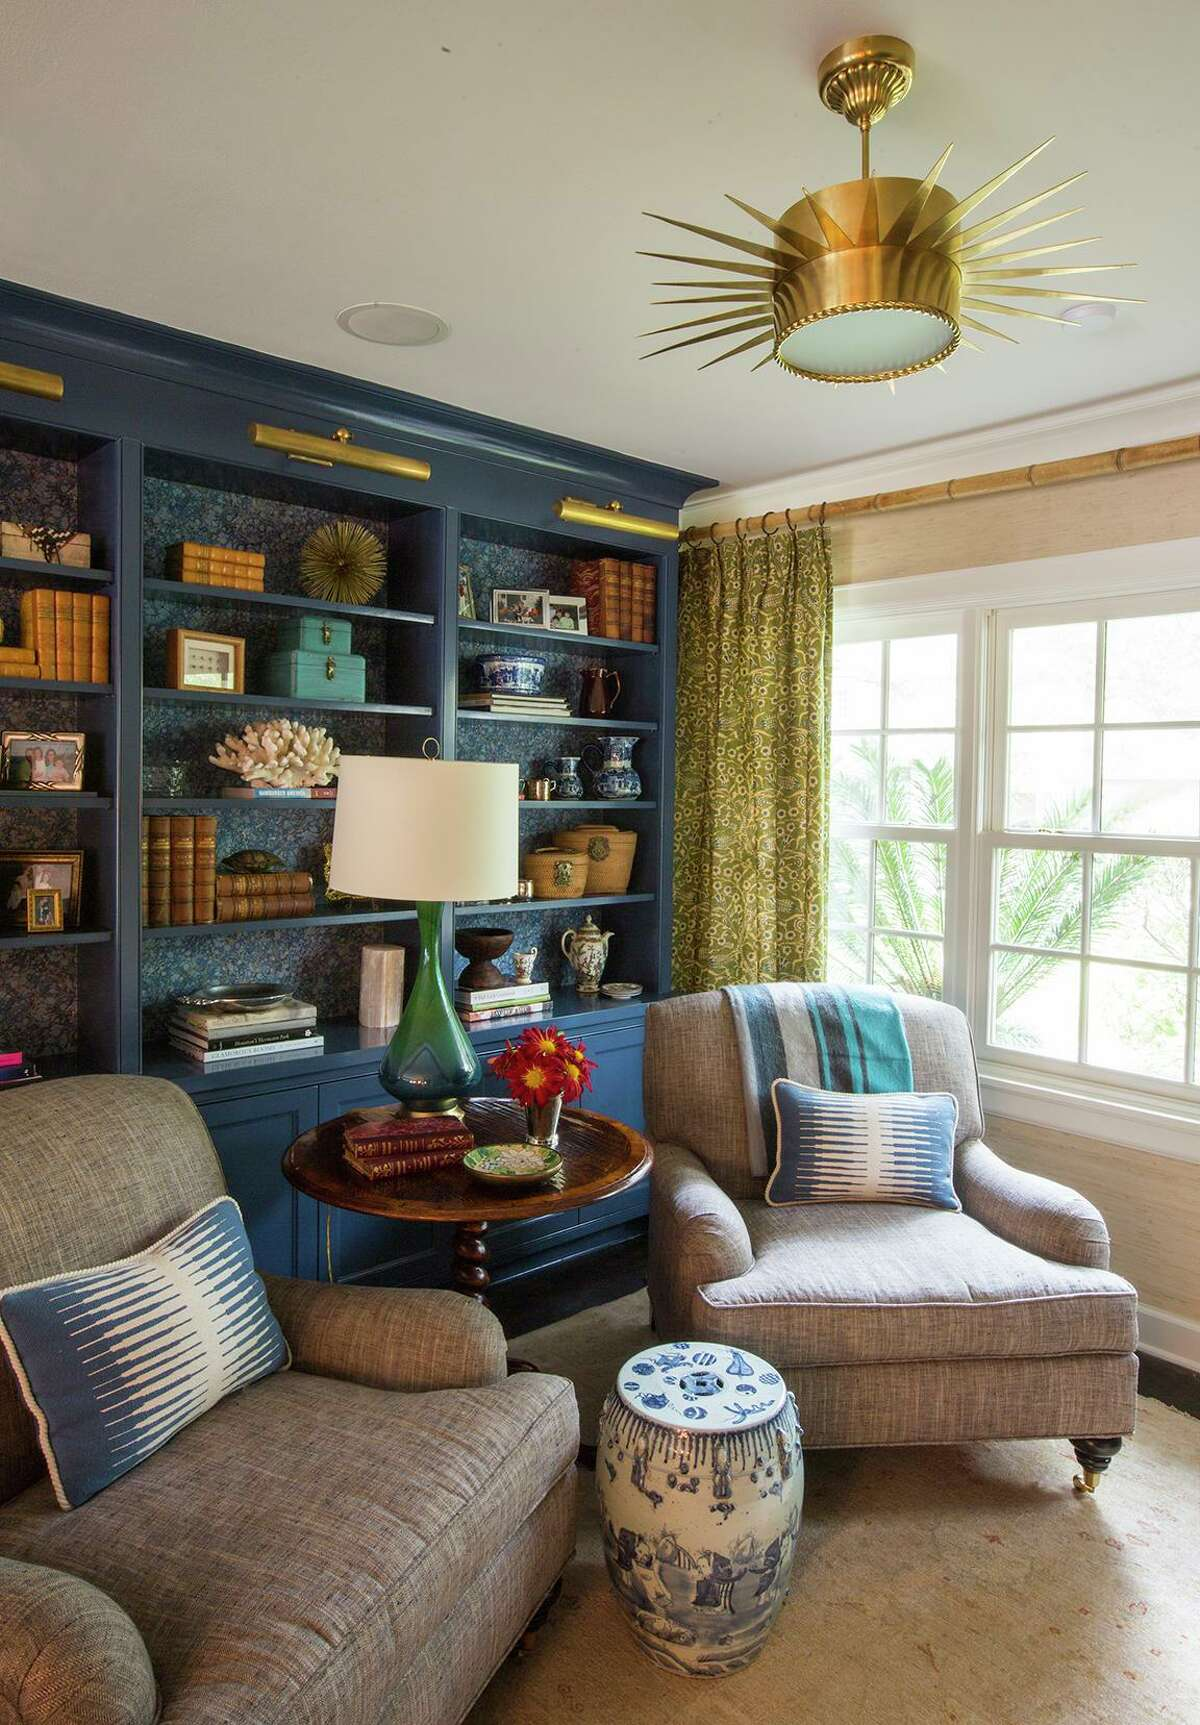 A ceramic garden stool with Asian motifs adds a touch of chinoiserie to this room designed by Lindsey Herod Interiors.